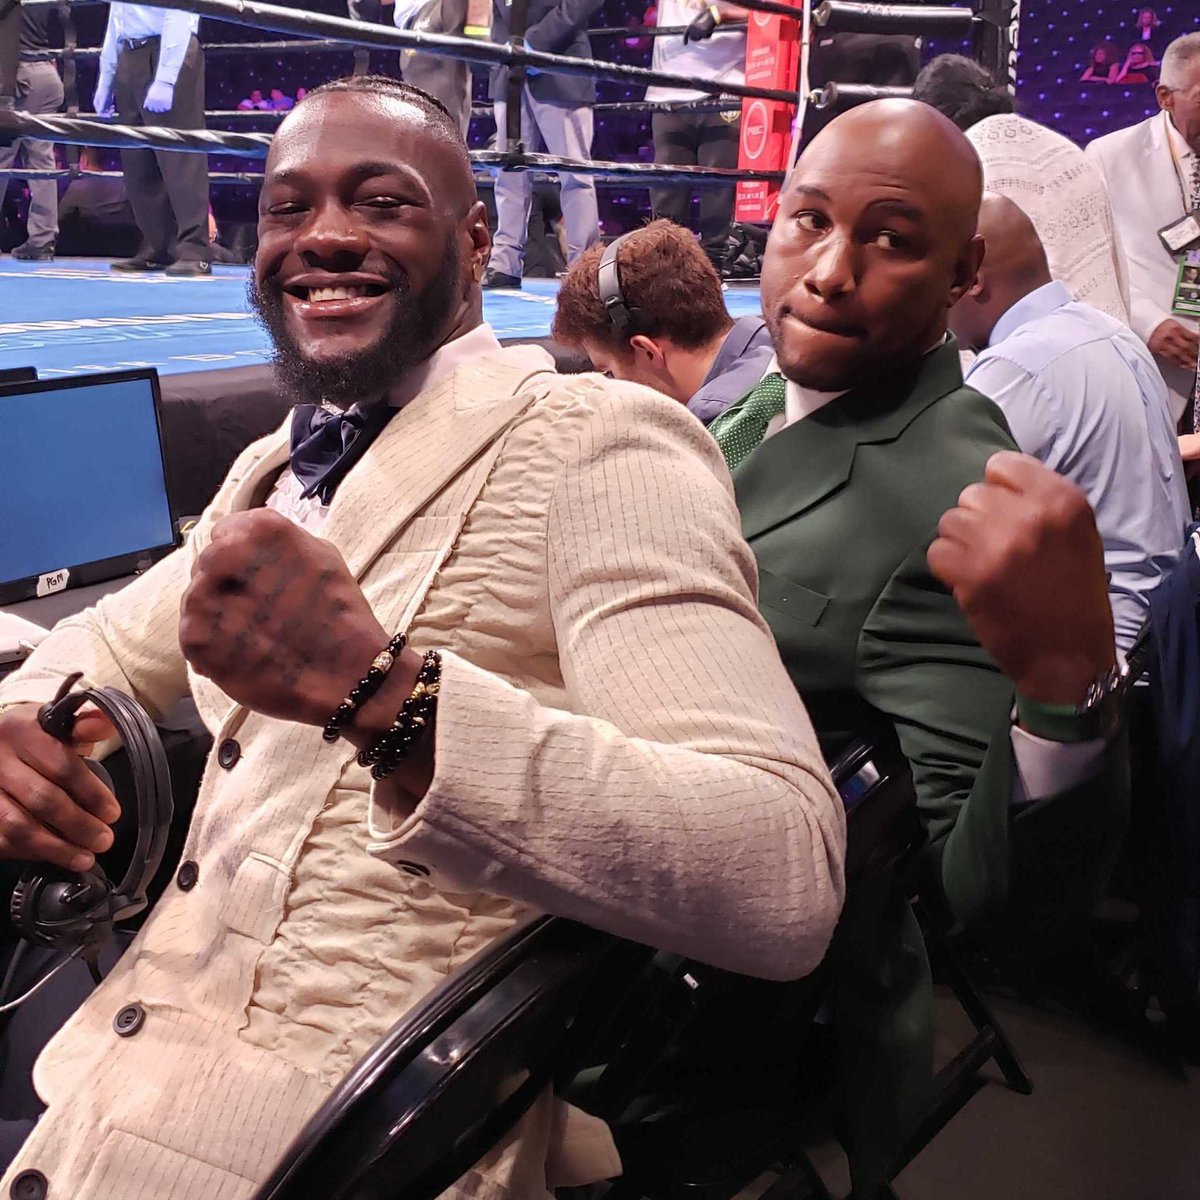 The CHAMPS—past and present—are in the building. @bronzebomber and @LennoxLewis will be ringside tonight on #PBConFOX for #KownackiArreola.